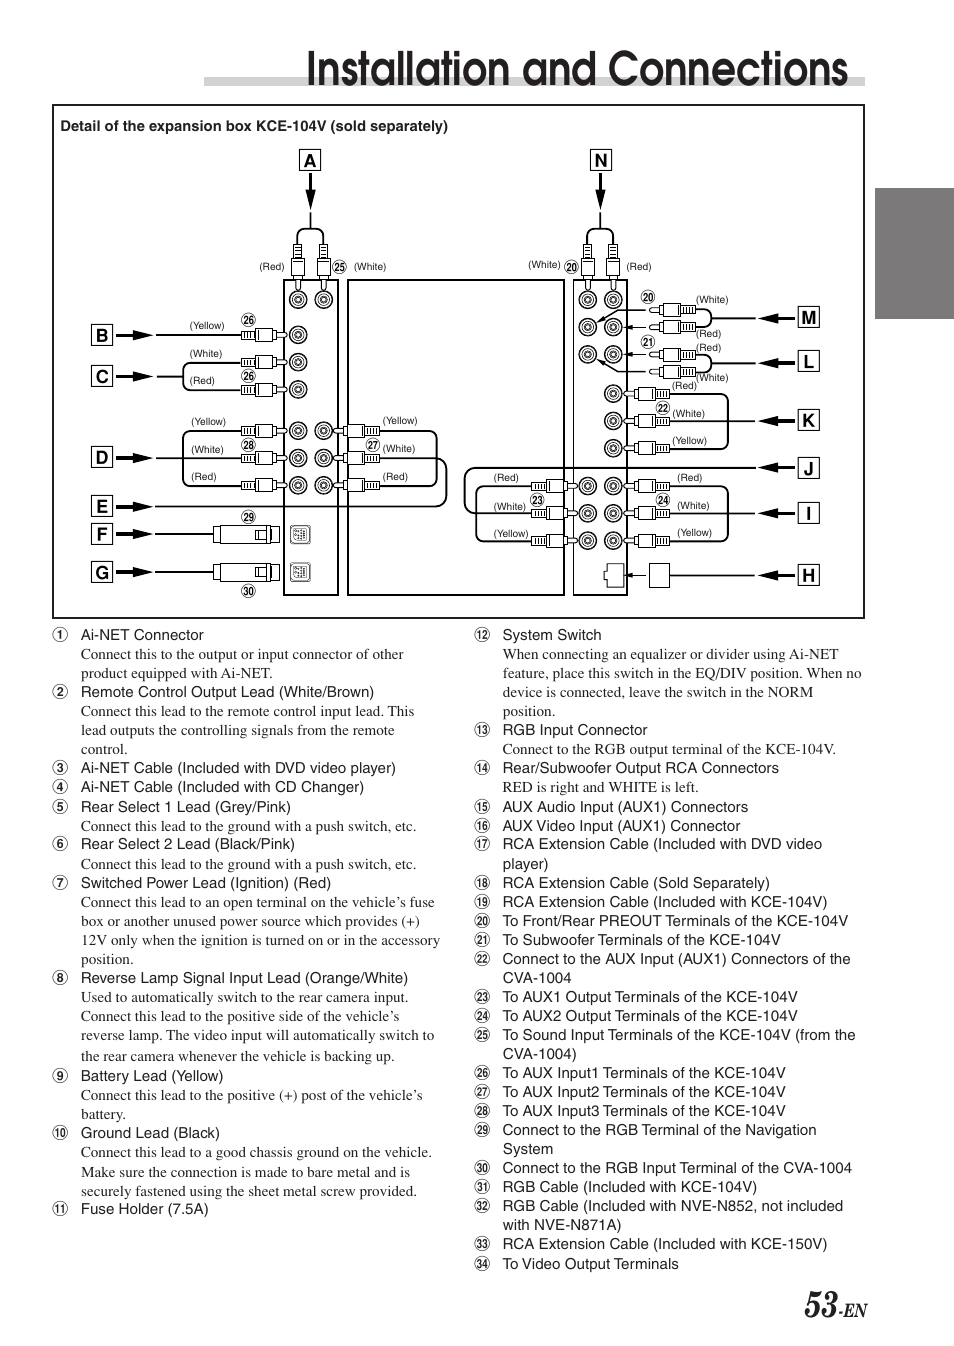 Cva 1005 Wiring Diagram For - Wiring Library